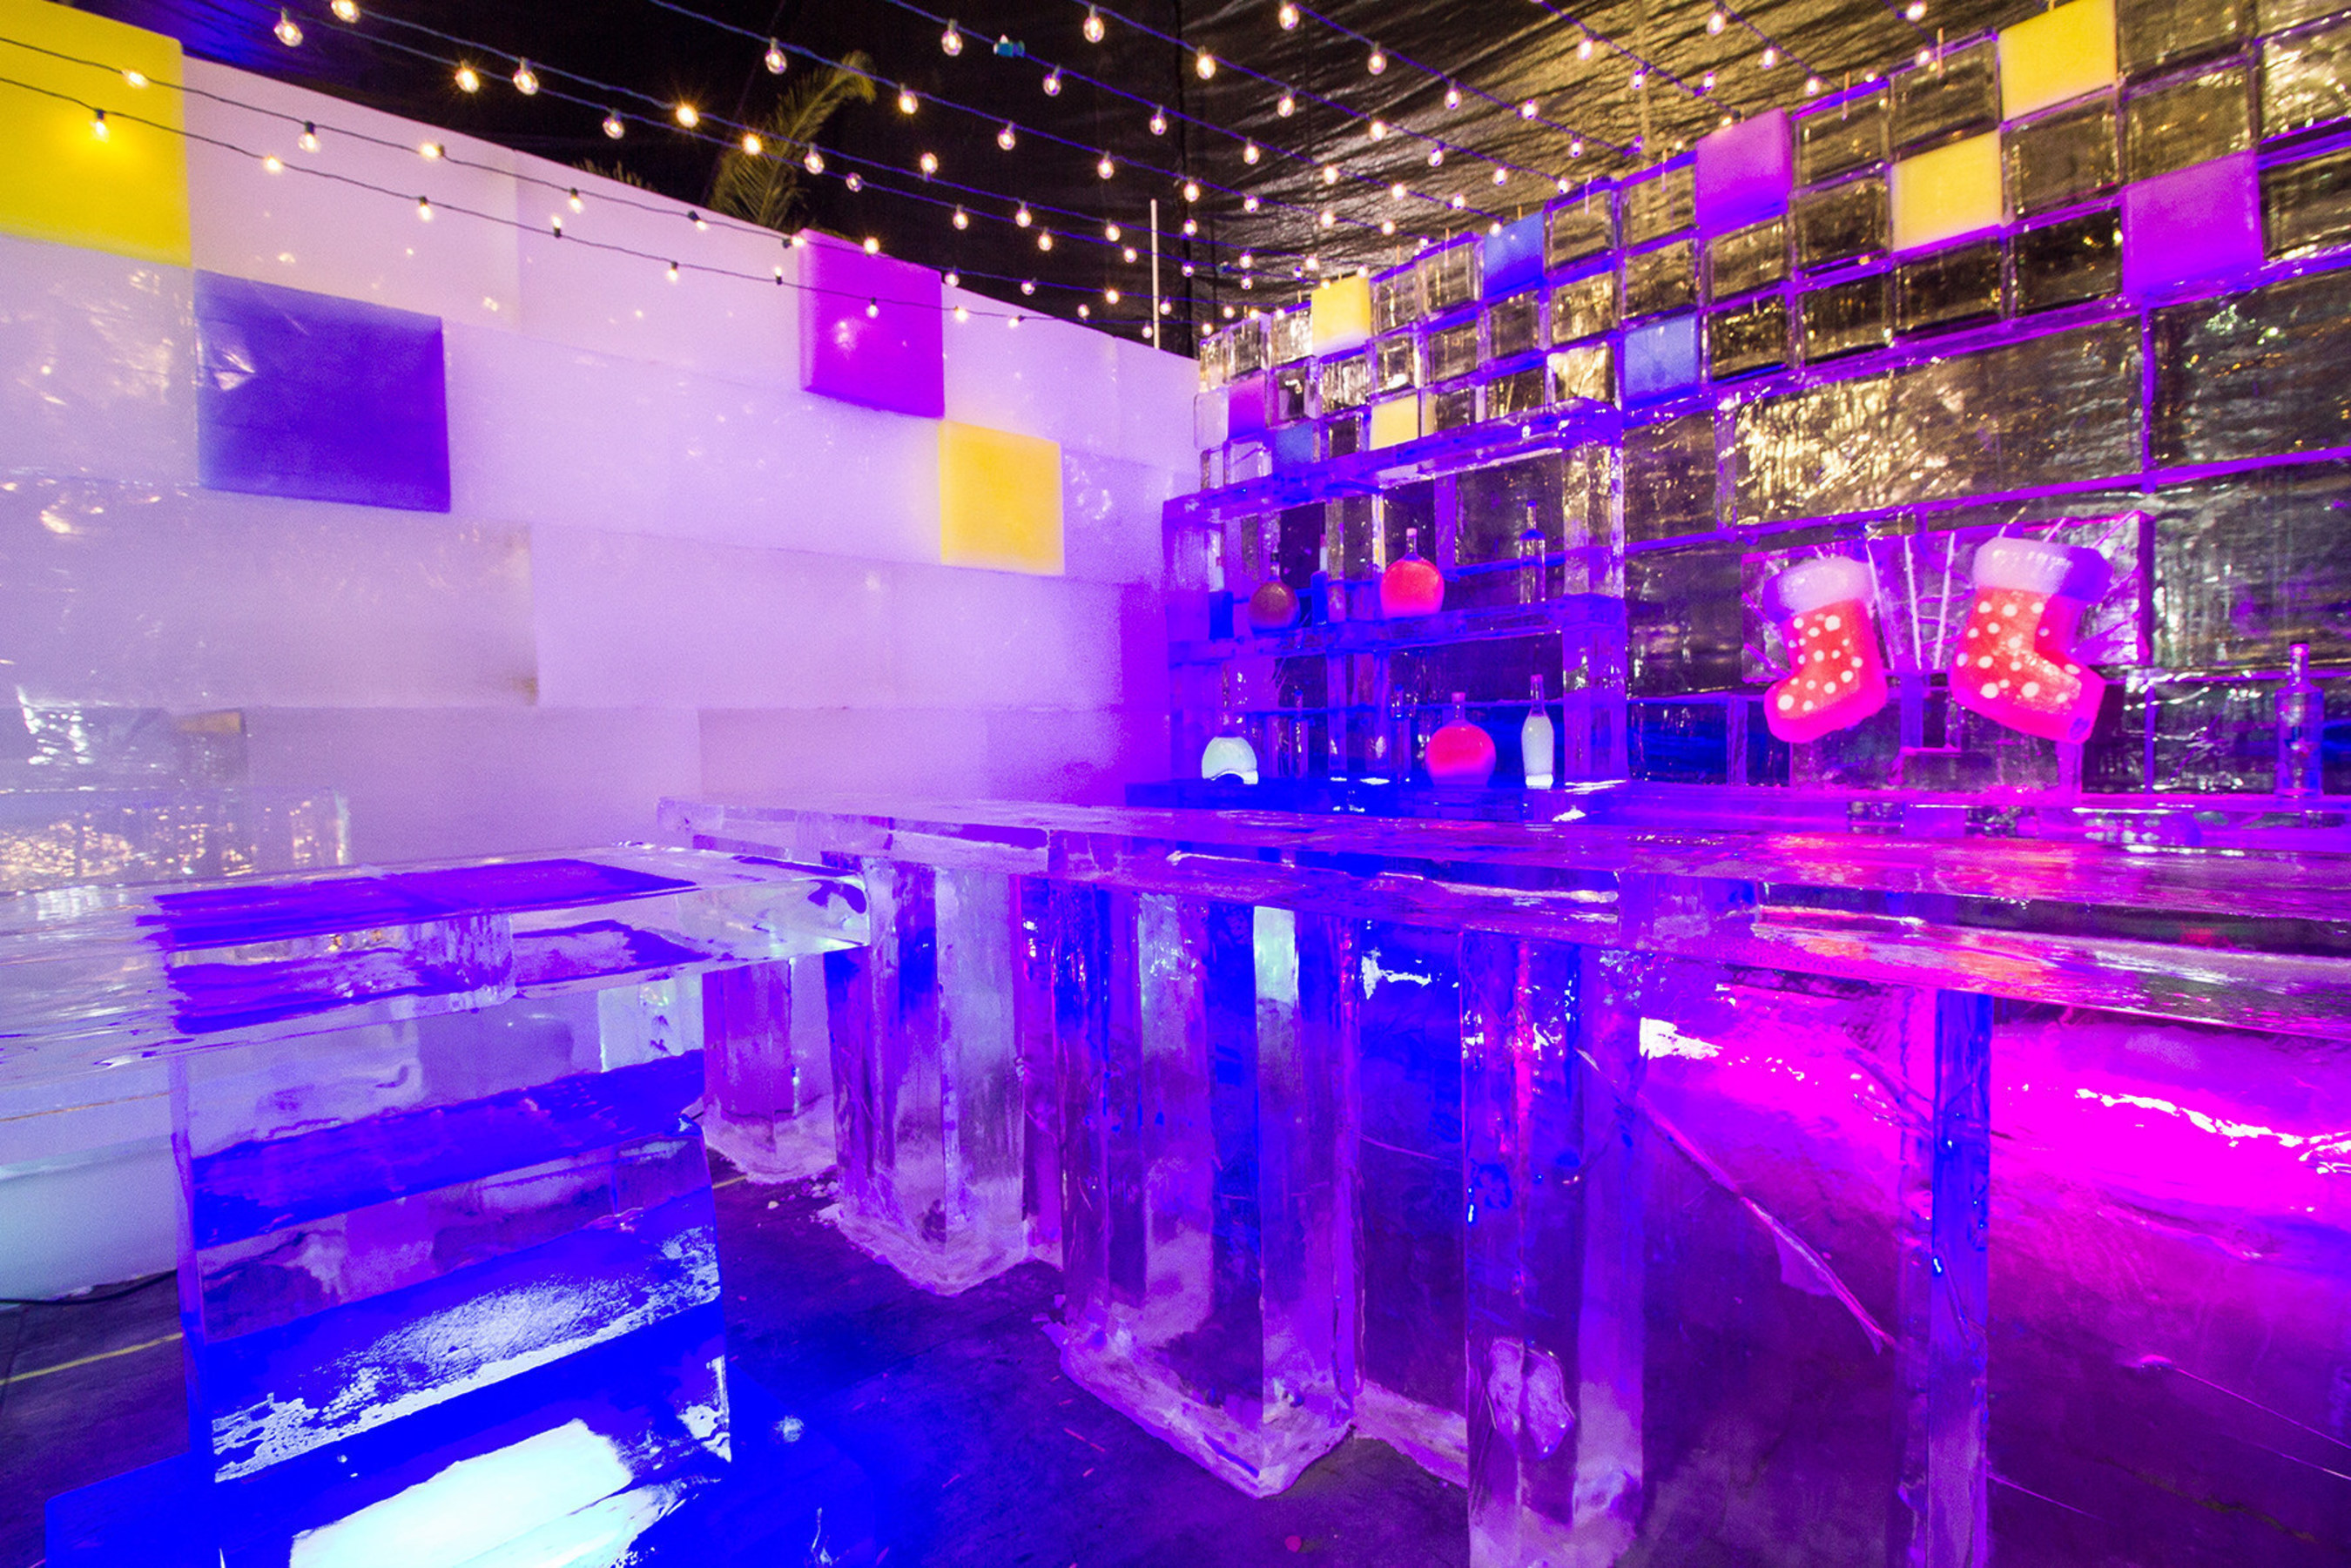 Shivers Ice Bar Is One Of The New Features Guests Will Experience At ICE  LAND: